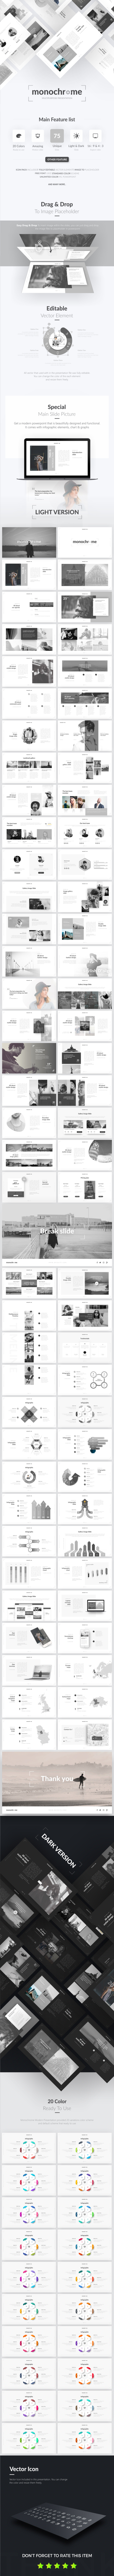 Monochrome Multipurpose Presentation - Business PowerPoint Templates